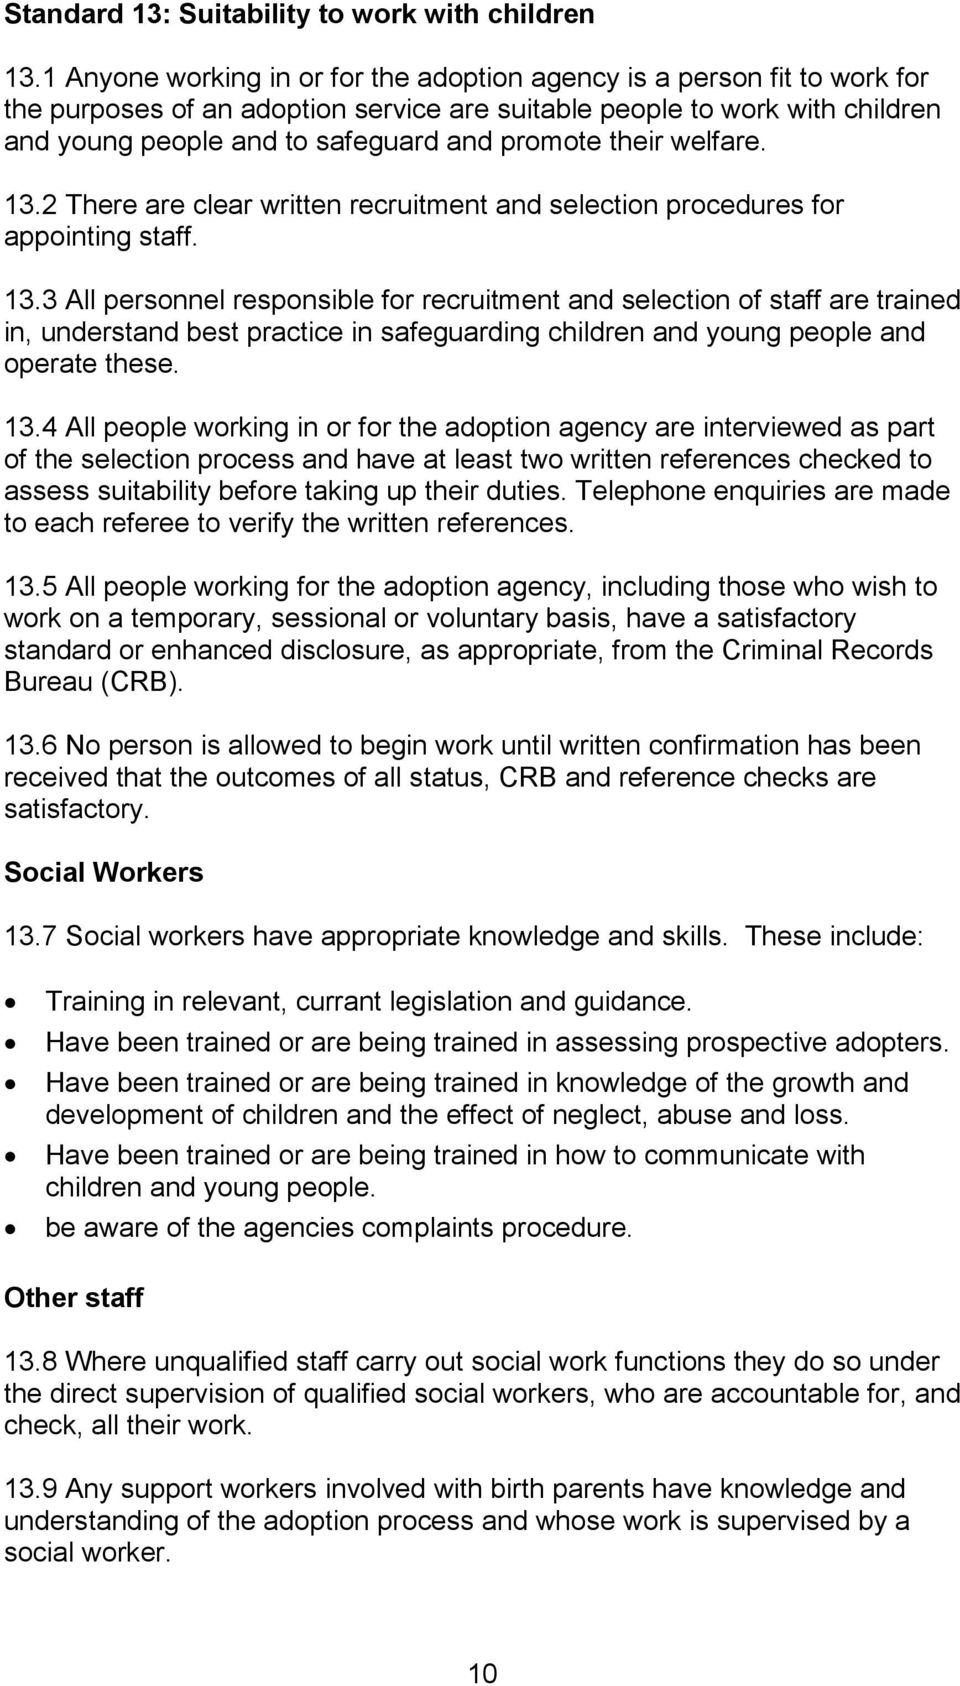 their welfare. 13.2 There are clear written recruitment and selection procedures for appointing staff. 13.3 All personnel responsible for recruitment and selection of staff are trained in, understand best practice in safeguarding children and young people and operate these.